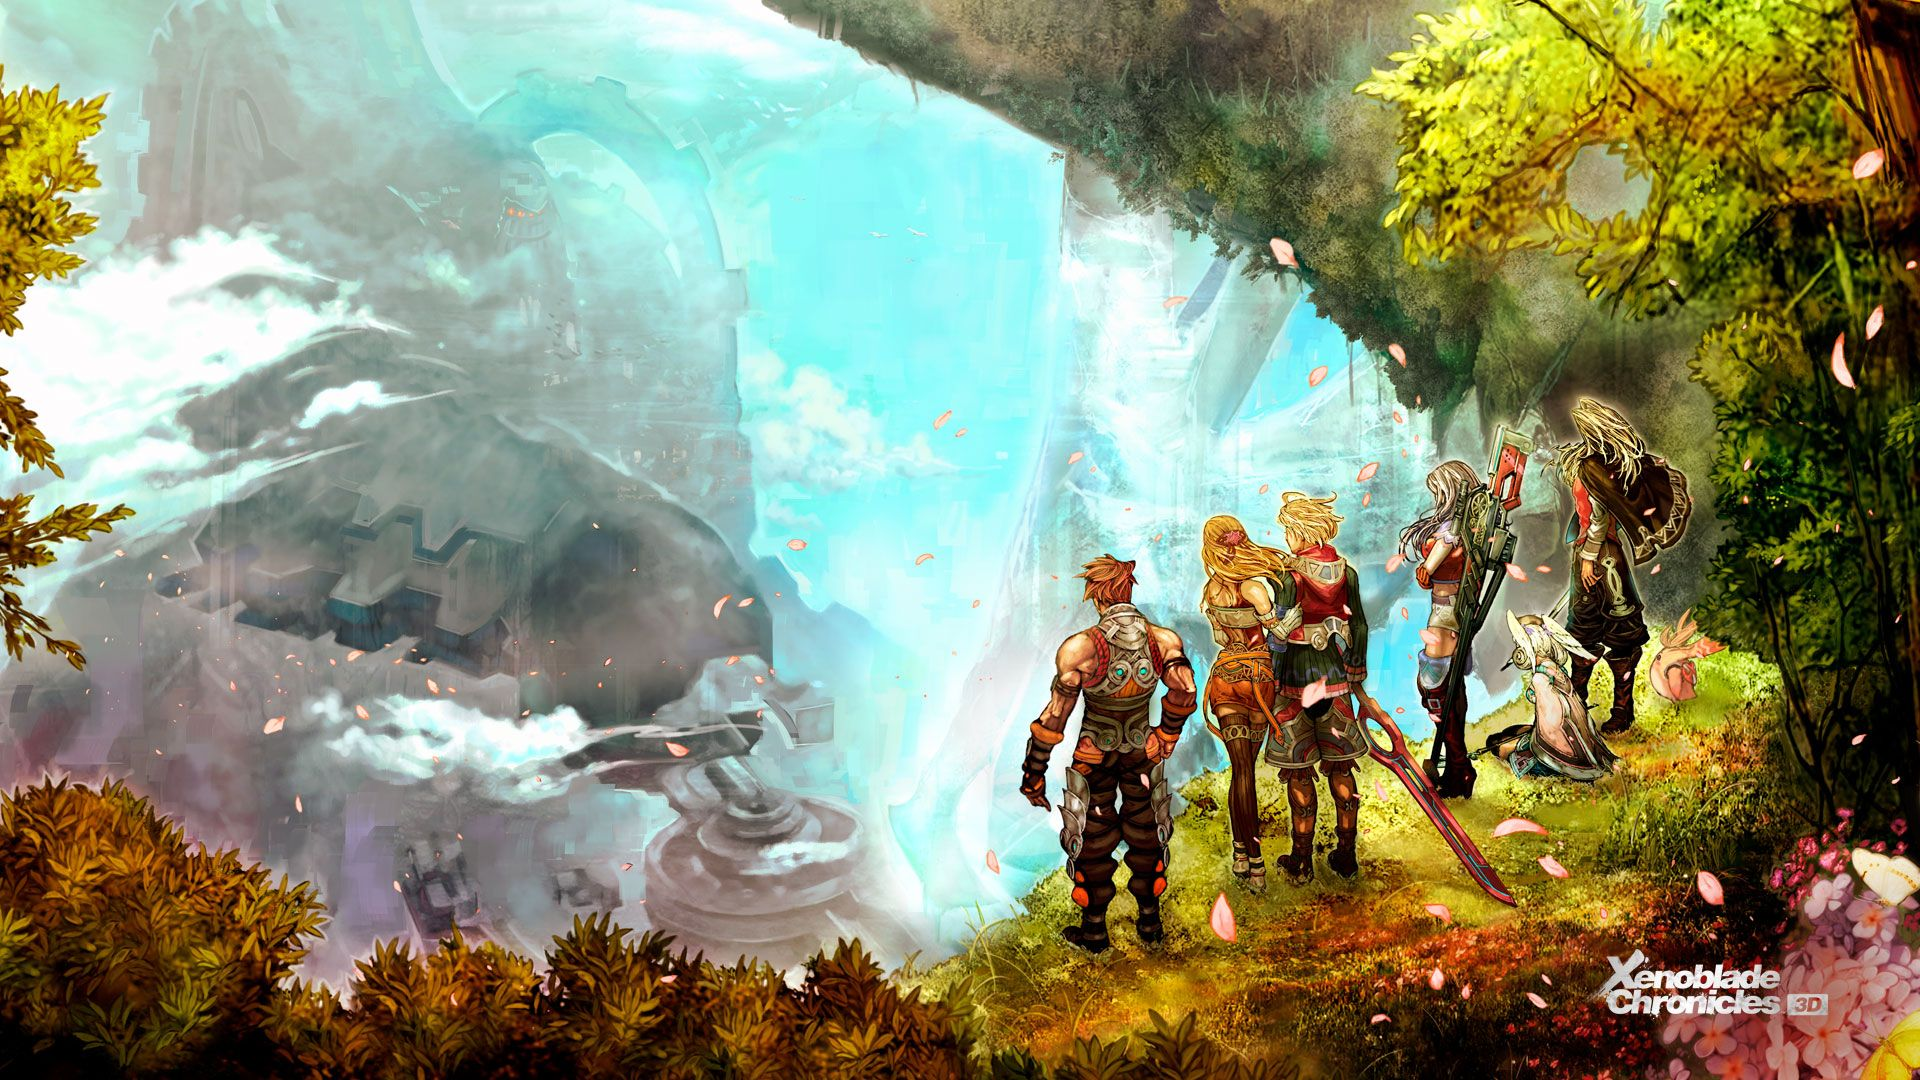 Image Result For Xenoblade Chronicles Concept Art Xenoblade